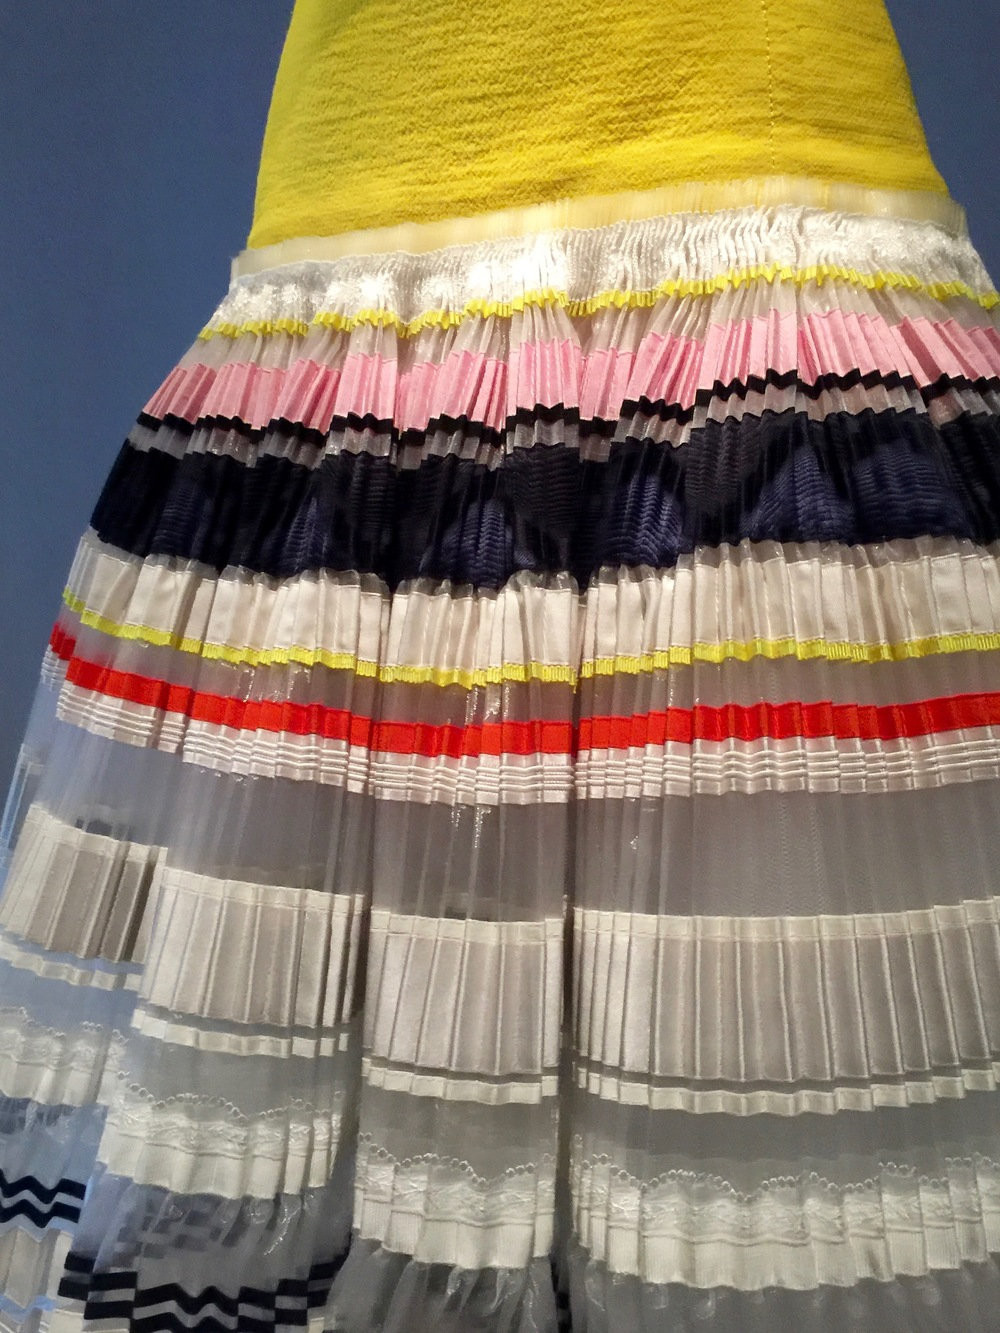 Detail of pleating